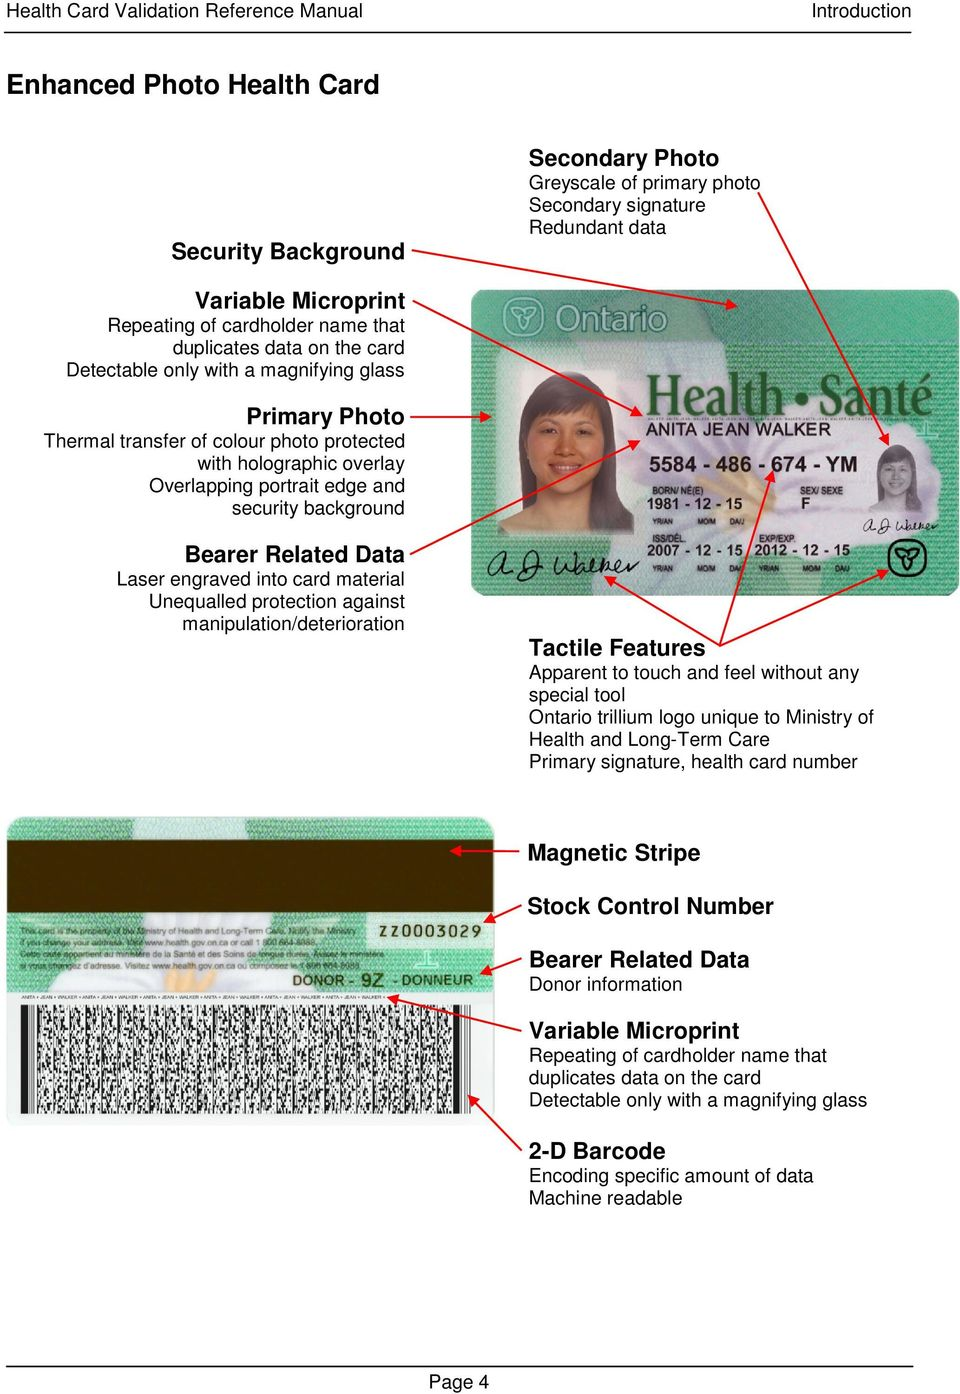 Bearer Related Data Laser engraved into card material Unequalled protection against manipulation/deterioration Tactile Features Apparent to touch and feel without any special tool Ontario trillium